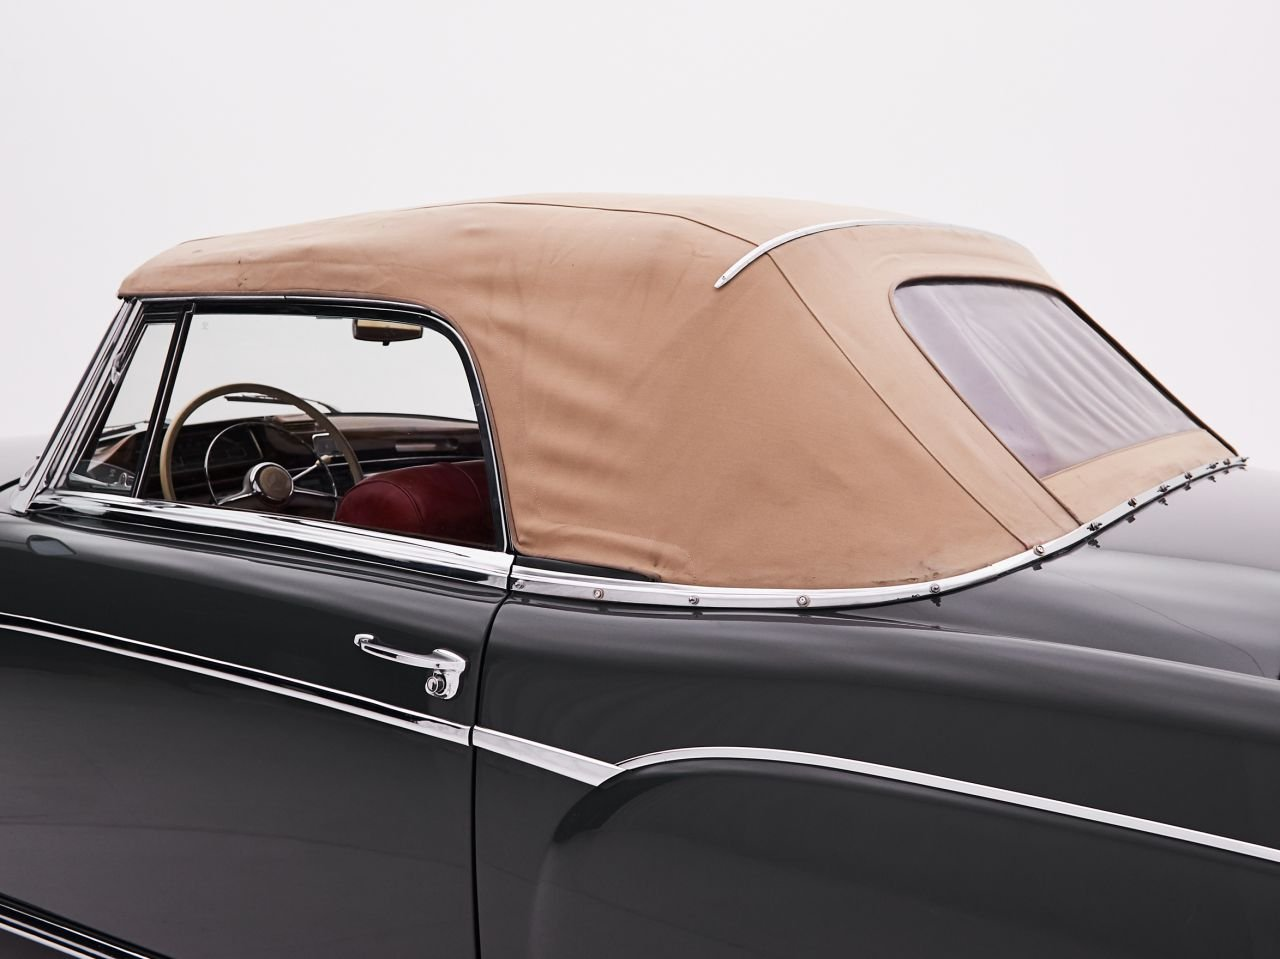 1959 MERCEDES 220S PONTON CABRIOLET for sale For Sale by Auction (picture 6 of 6)